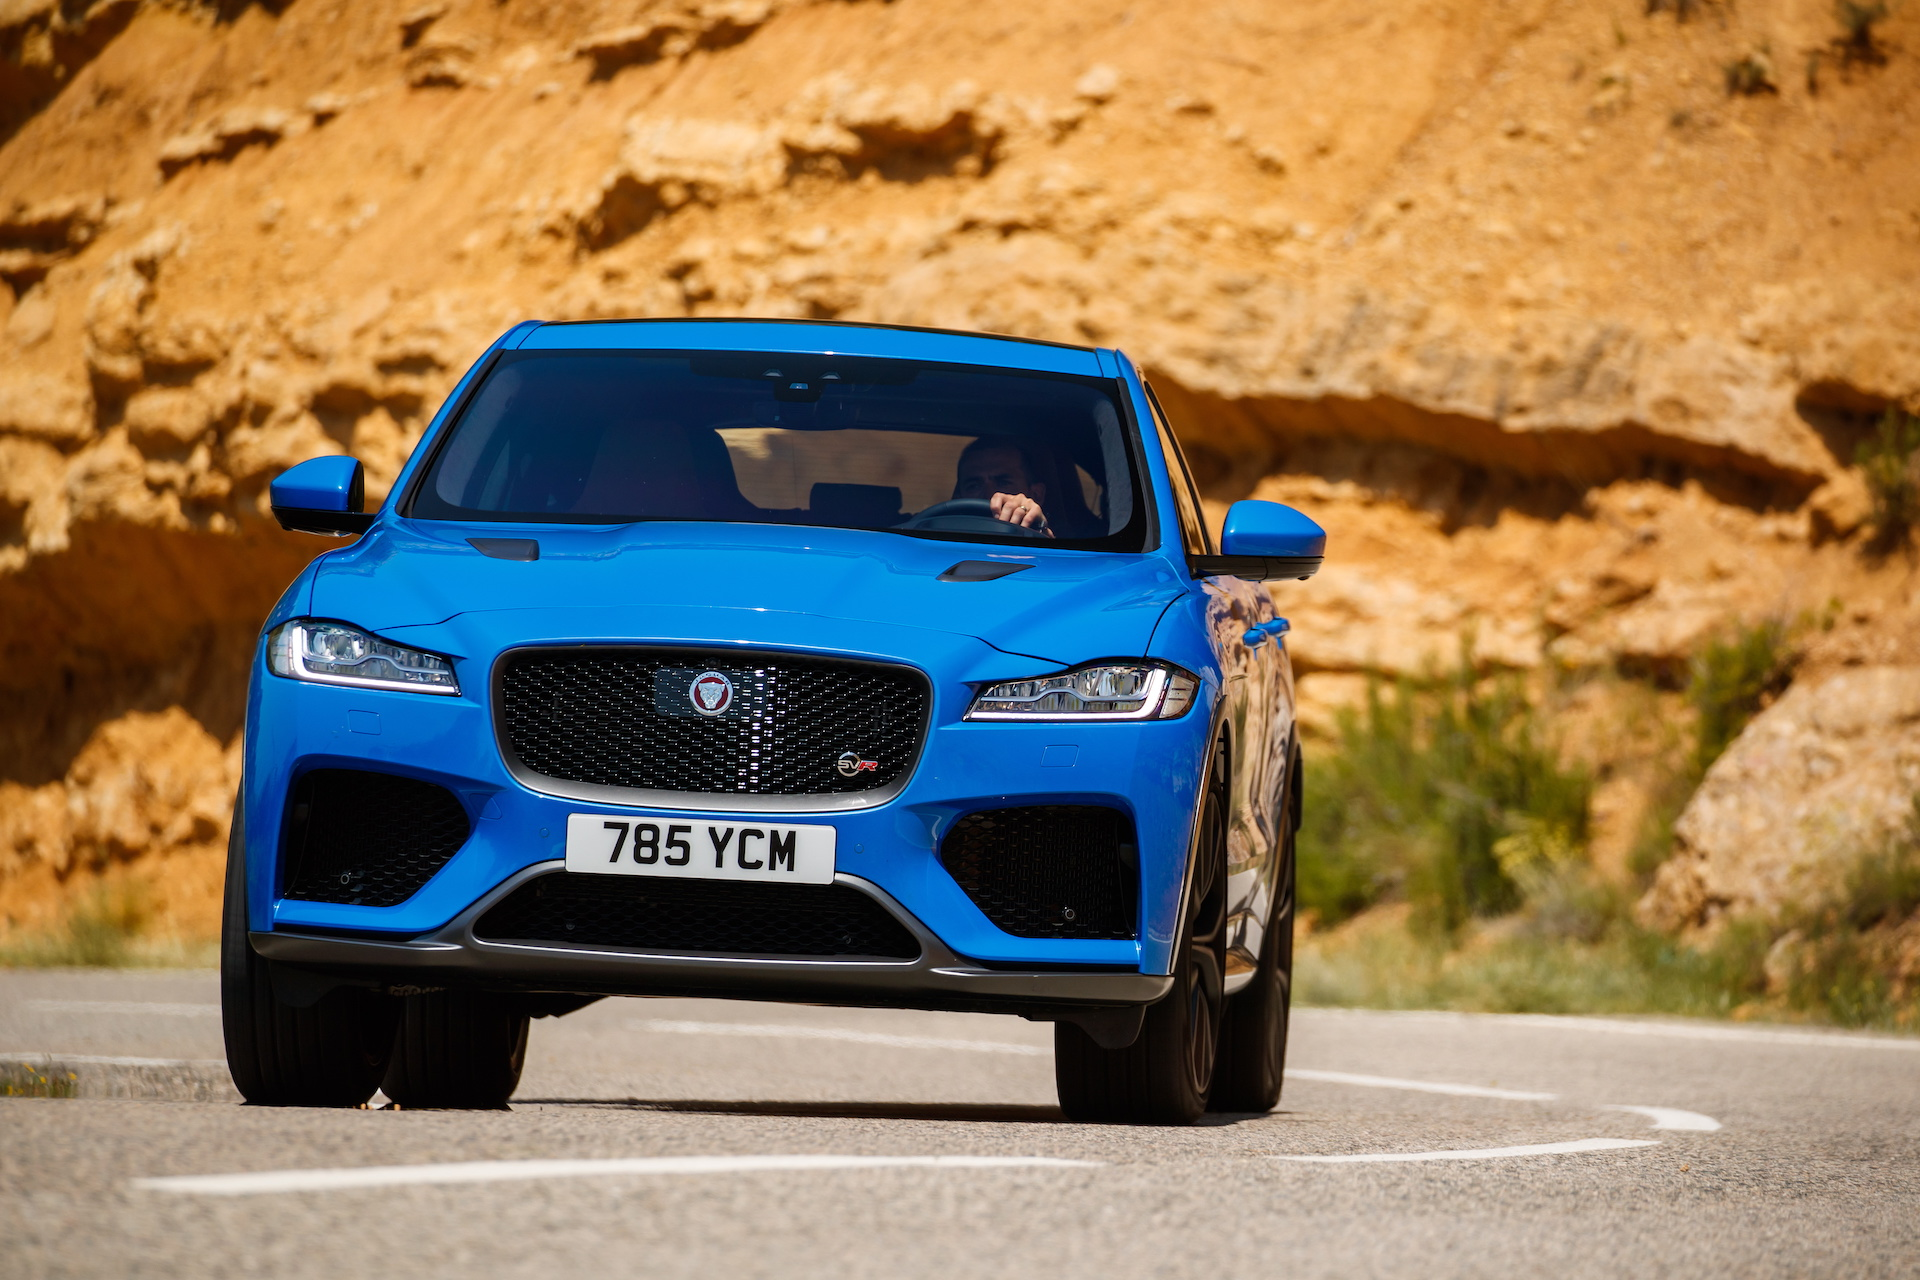 2019 Jaguar F Pace Svr 2020 Bmw M8 Electric Porsche 718 Car News